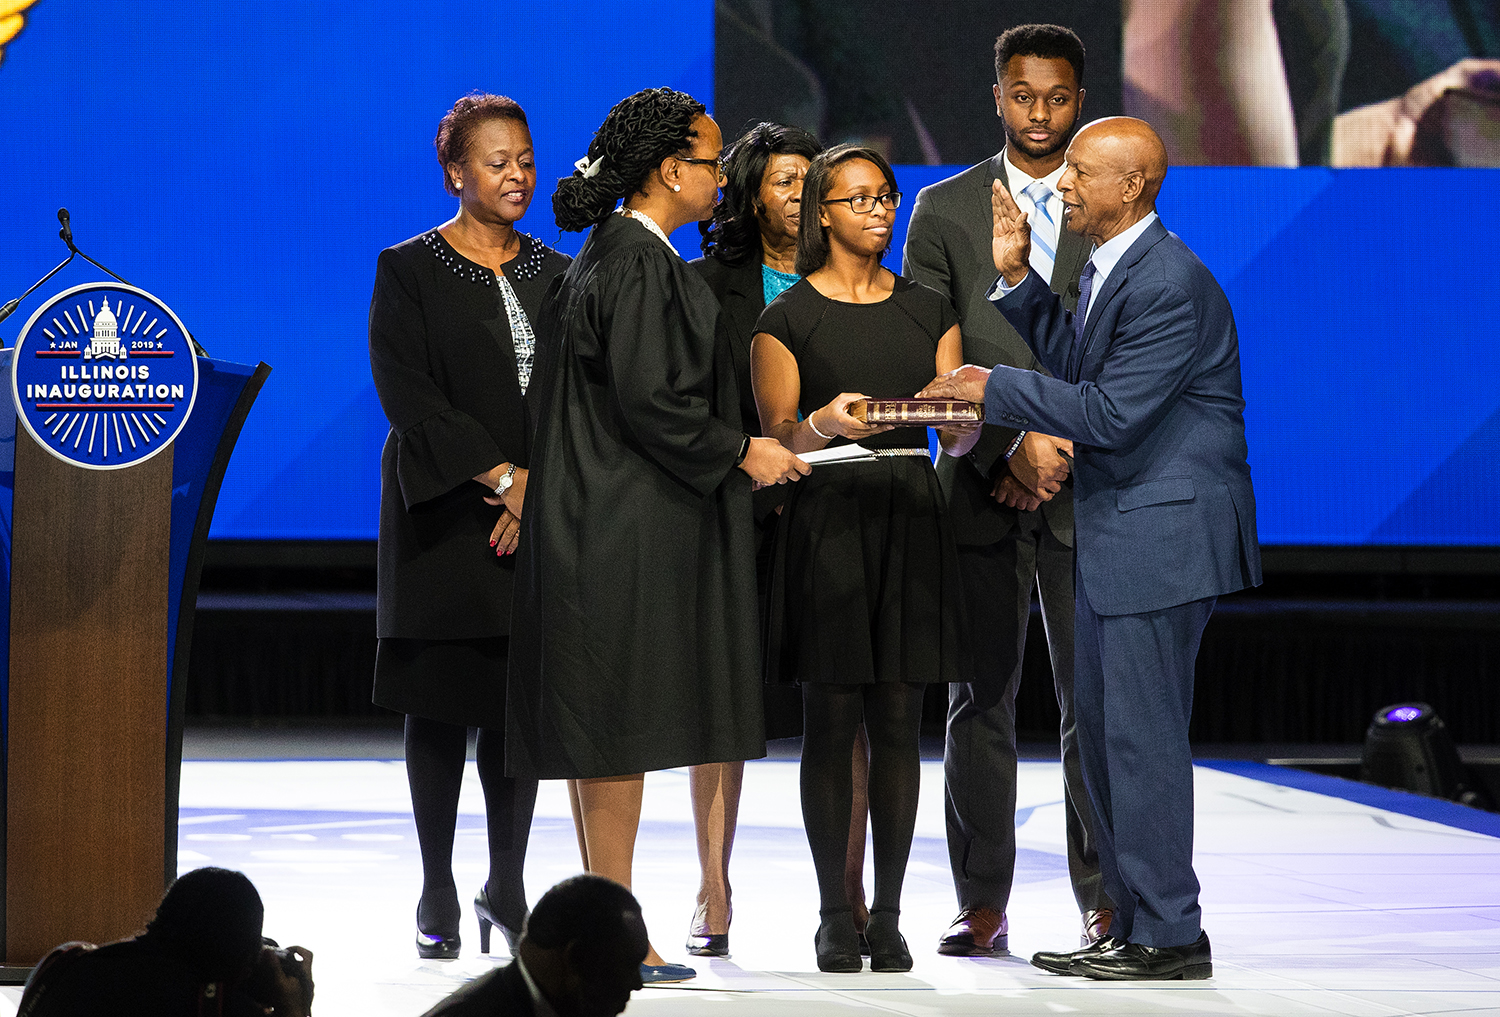 Illinois Secretary of State Jesse White takes the oath of office from judge Toya Harvey during the Illinois Inaugural Ceremony at the Bank of Springfield Center Monday, Jan. 14, 2019. [Ted Schurter/The State Journal-Register]